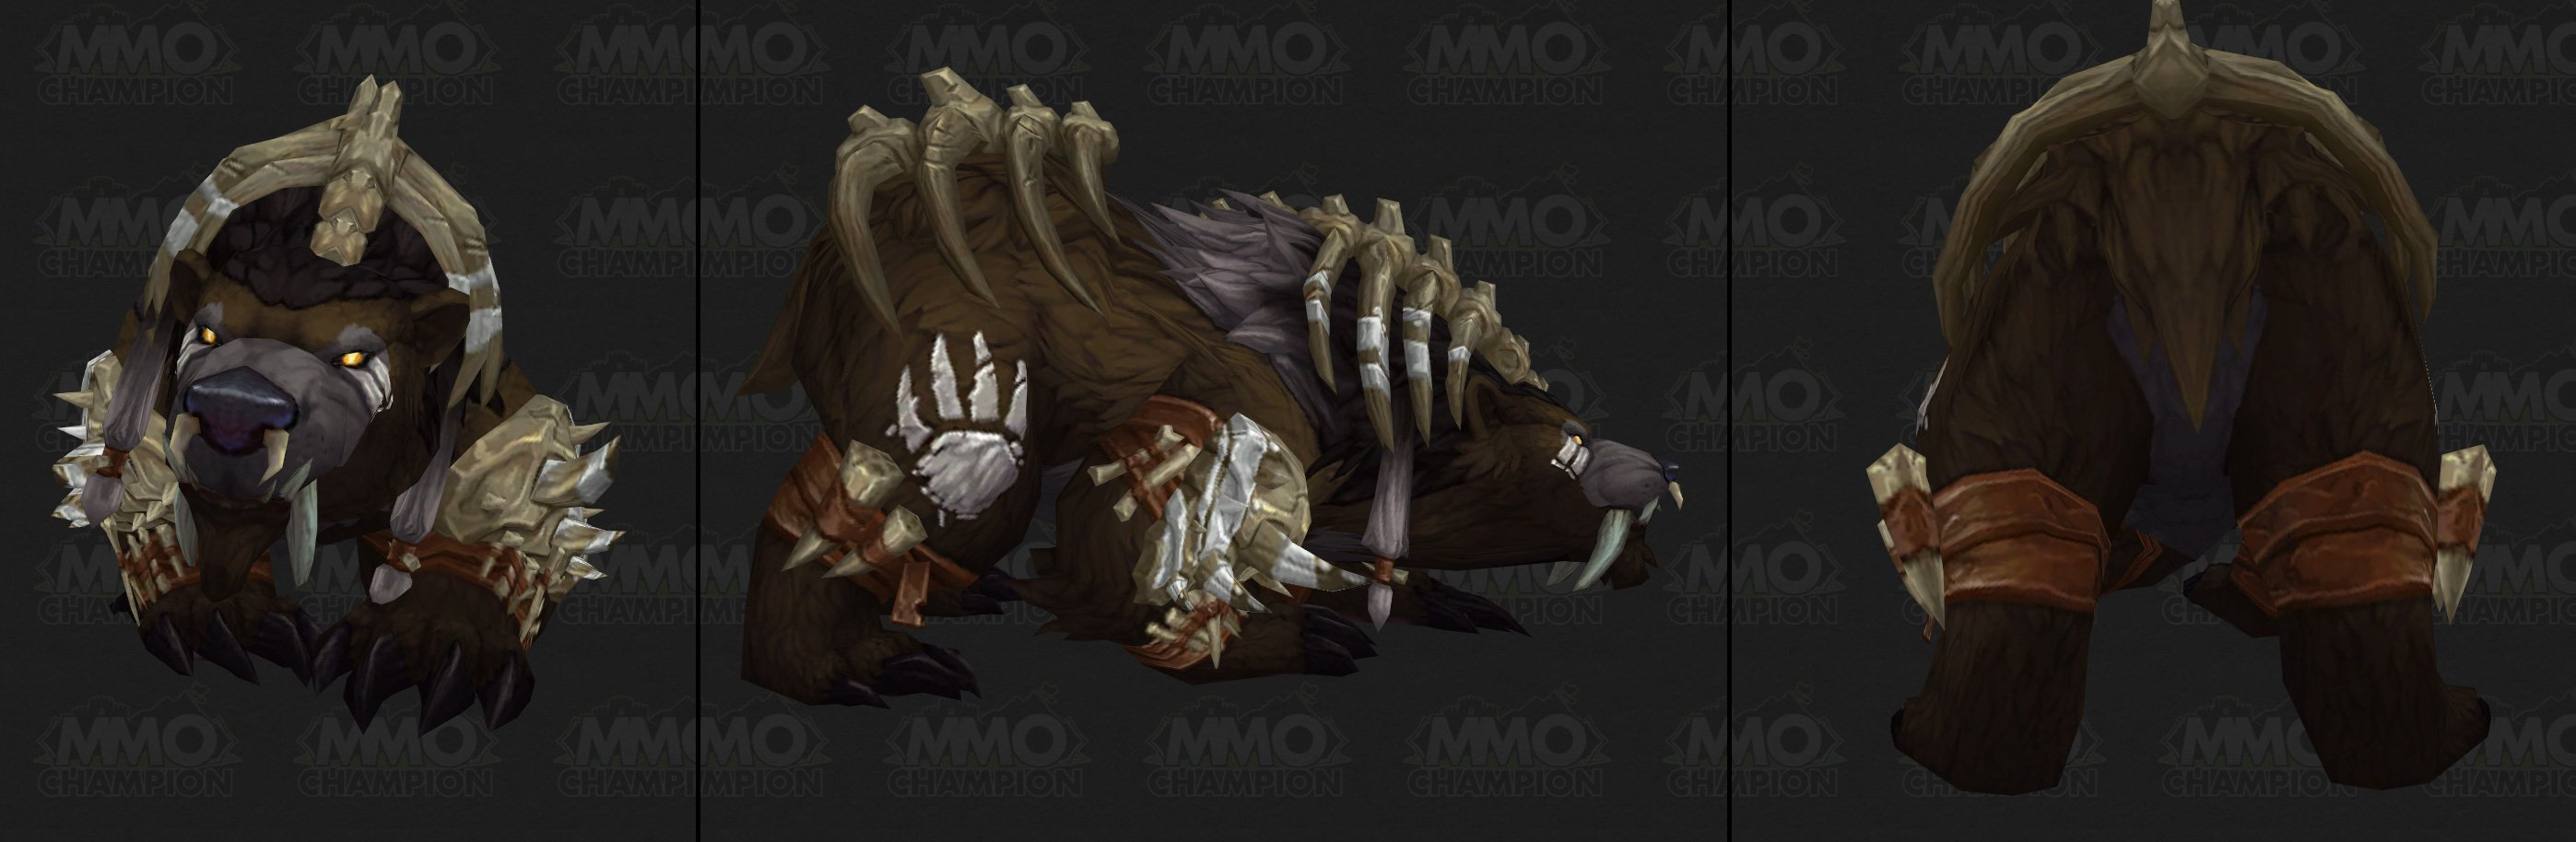 how to catch wild pets in wow